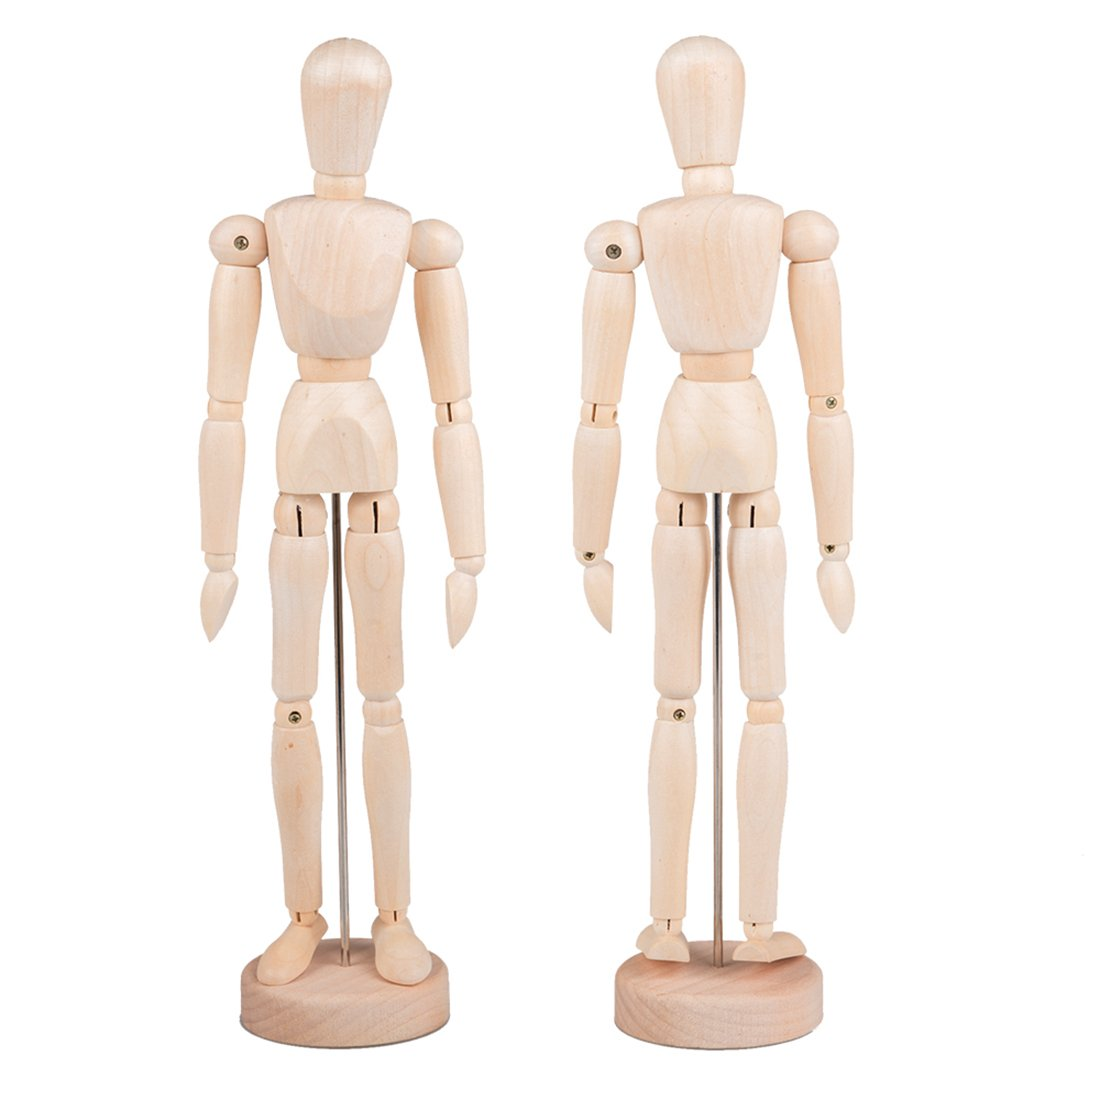 Tosnail 12 Inches Tall Wooden Mannequin Artist Manikin with Stand - Great for Drawing or Desktop Decor - Pack of 2 by Tosnail